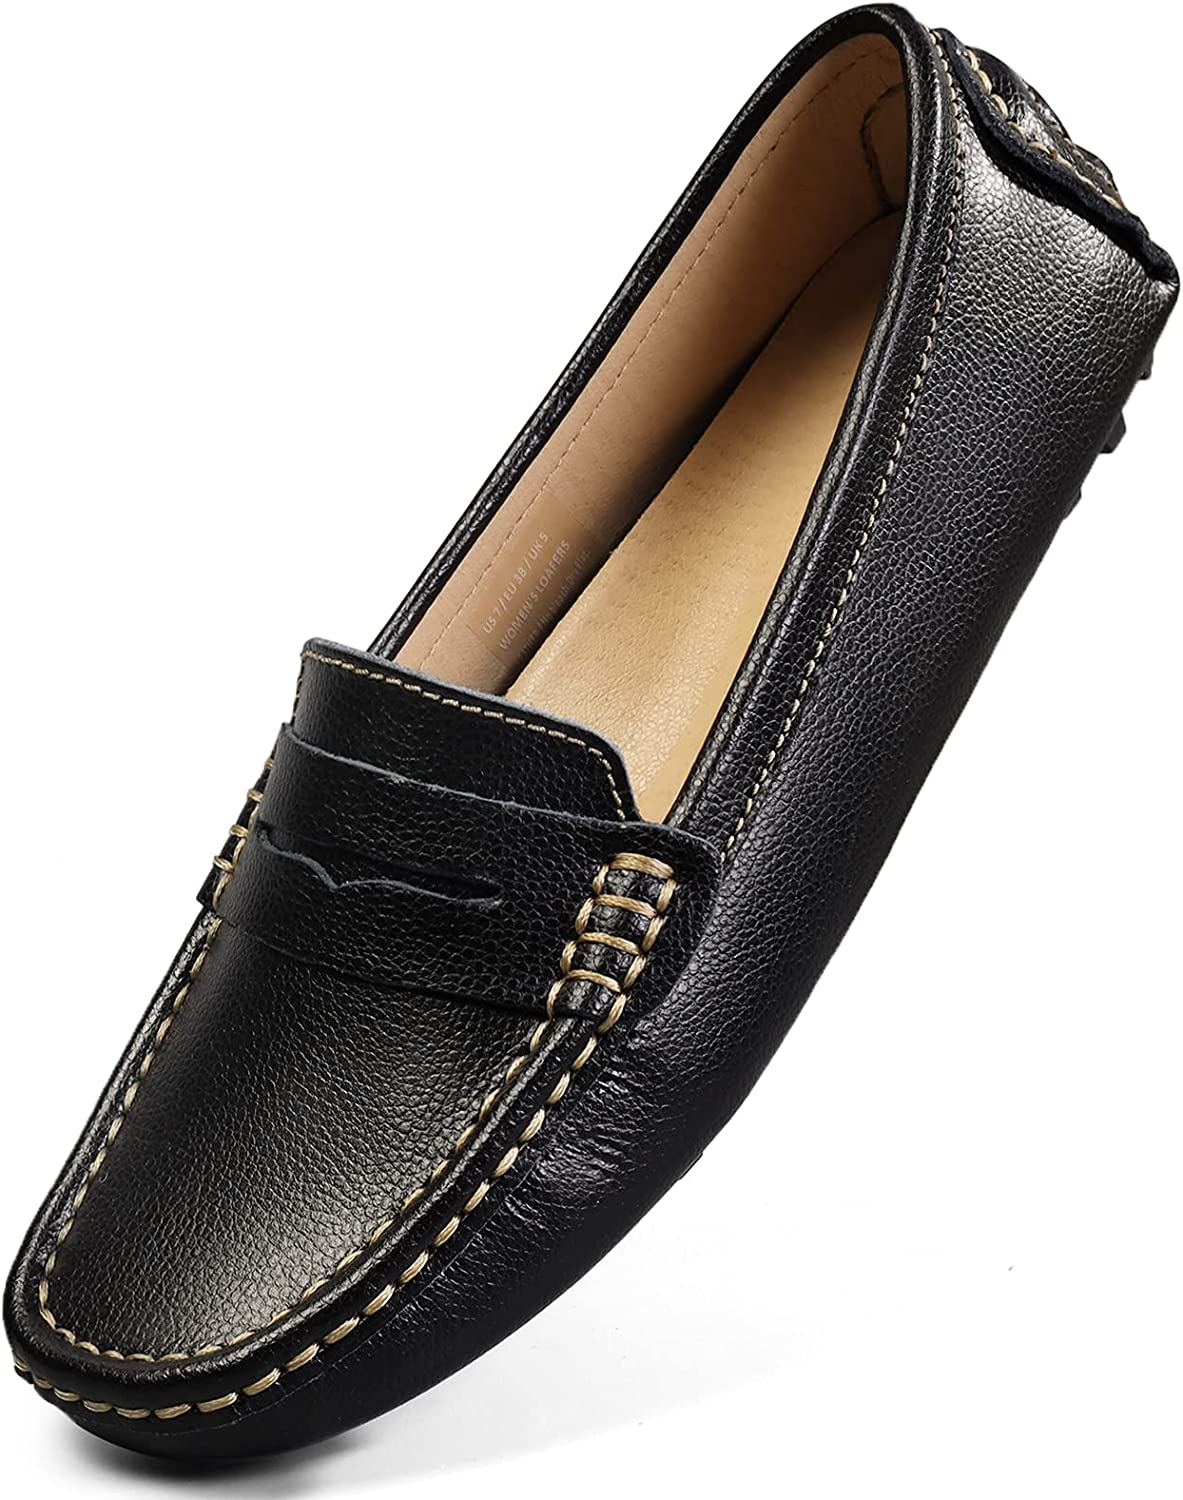 A surprise price is realized Artisure Women's Classic Genuine Over item handling ☆ Leather Driving Penny M Loafers